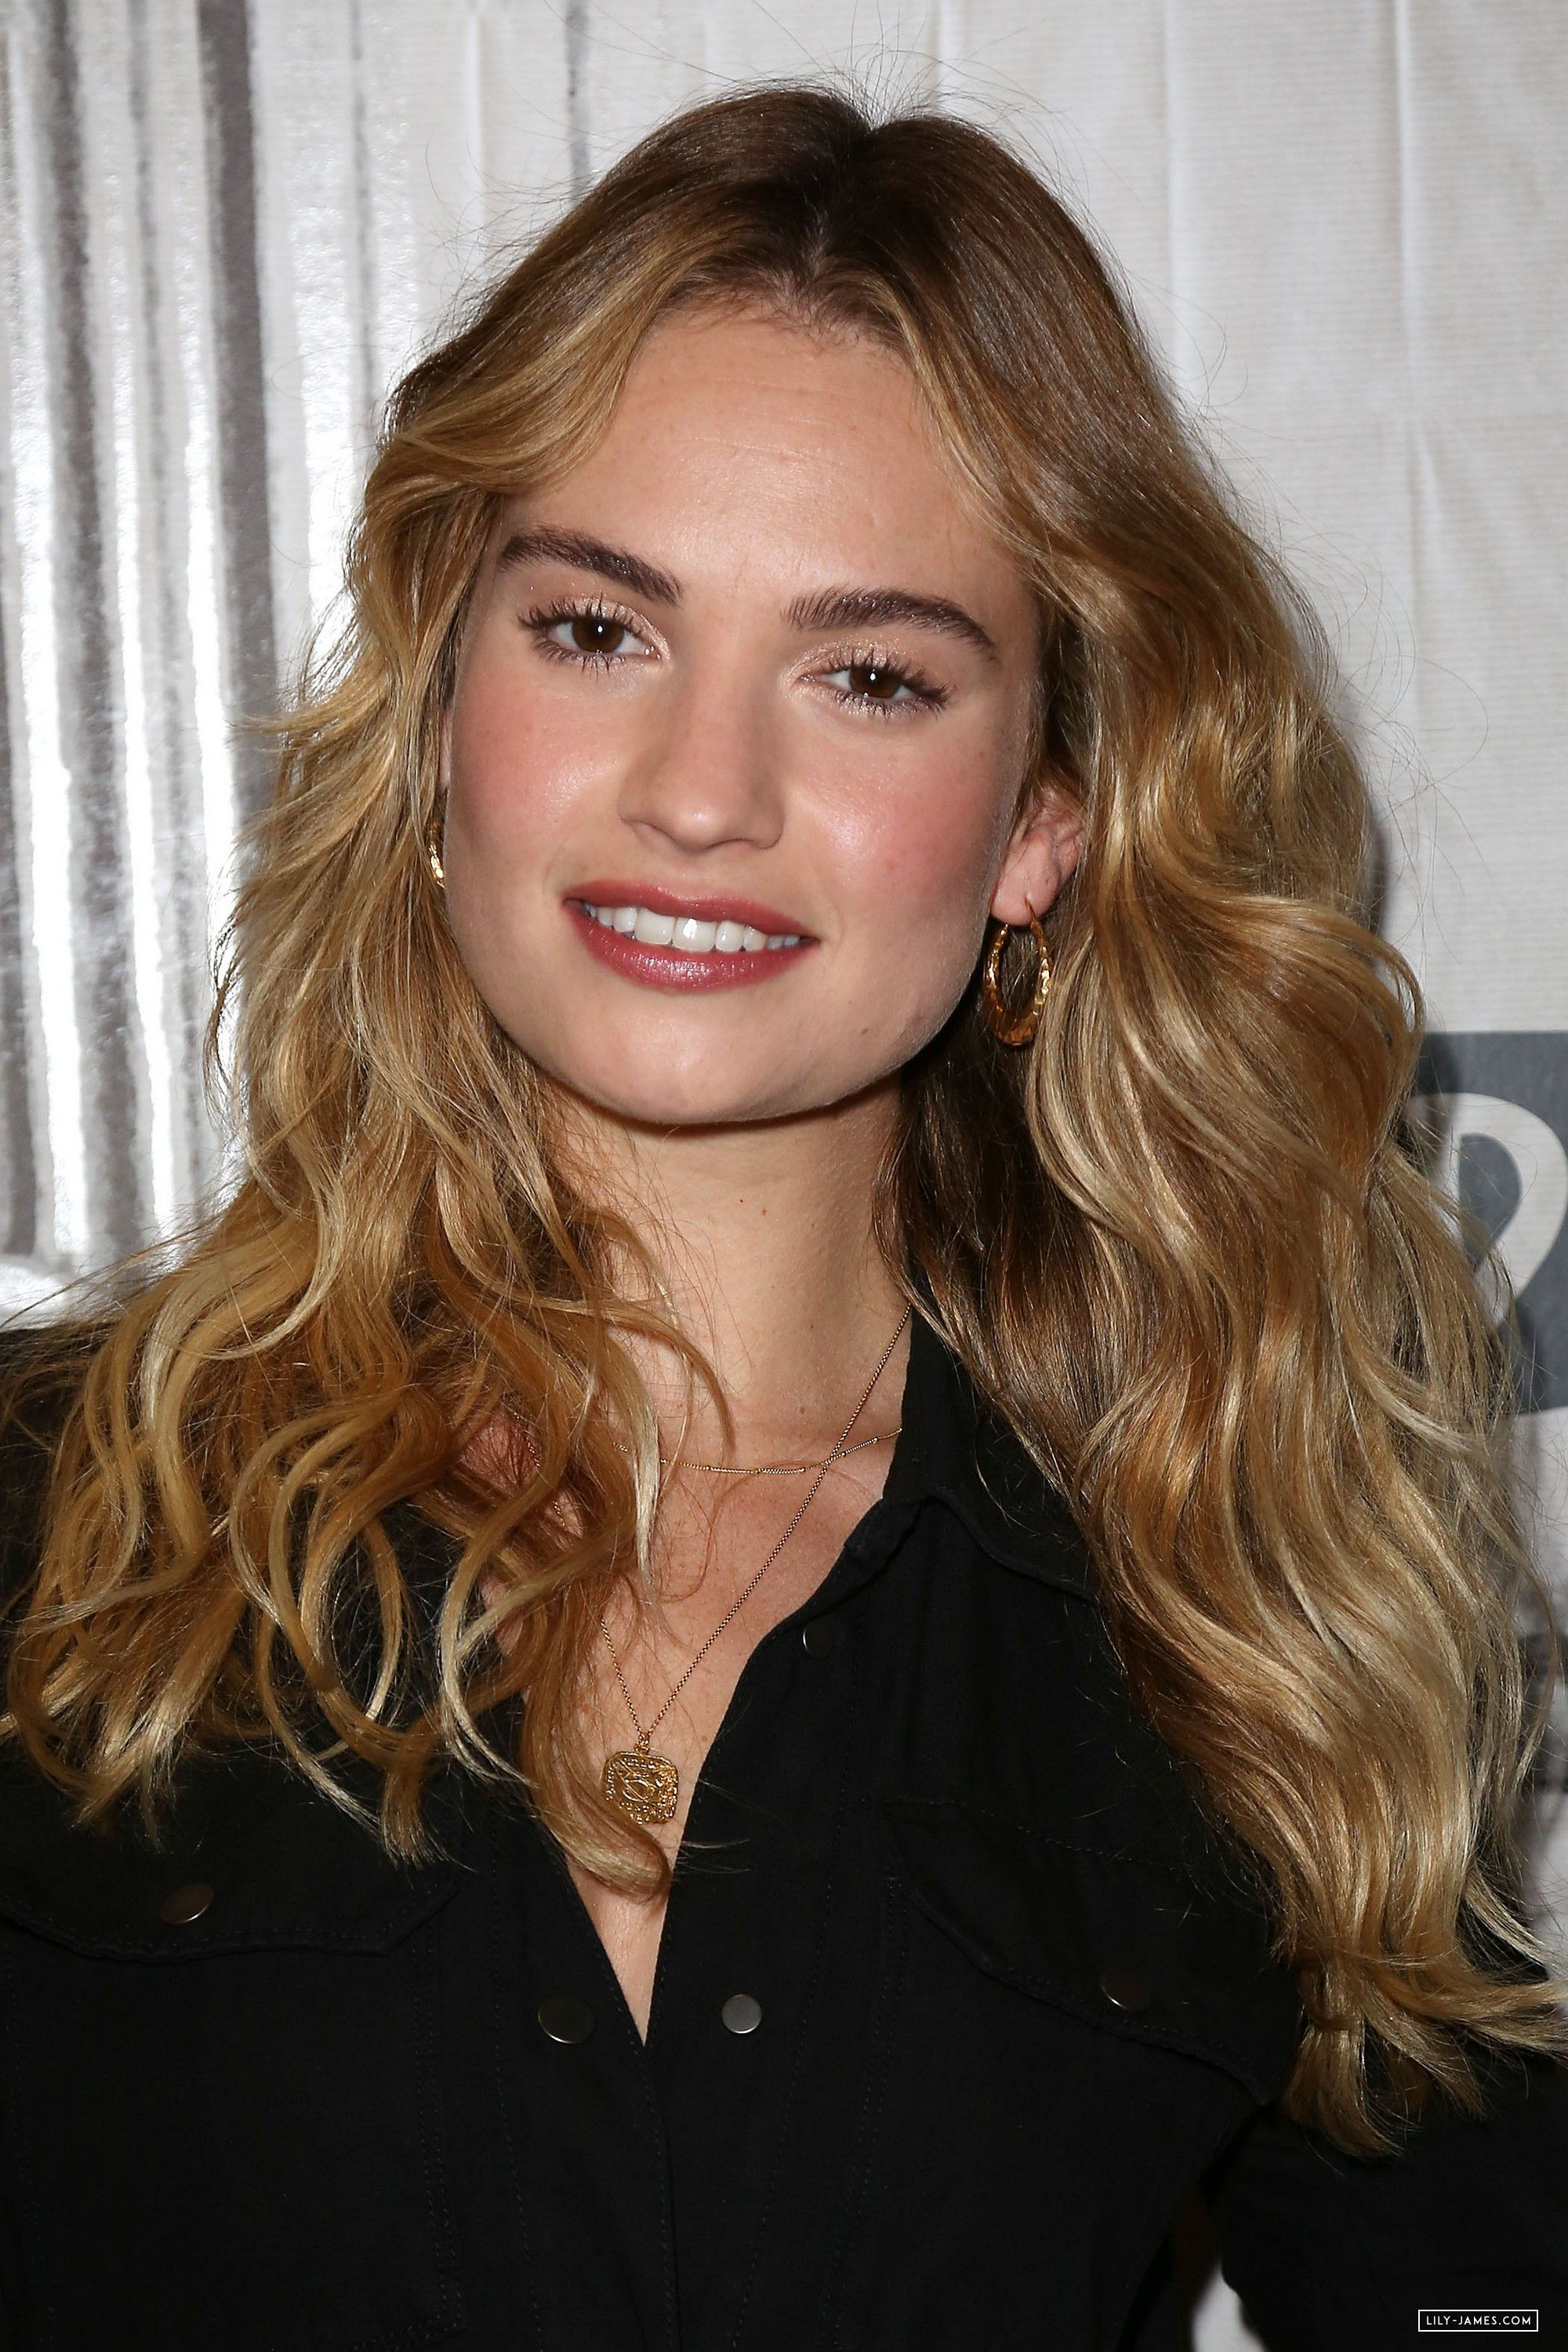 glowy bronze in 2019 | Lily james, Hair inspiration ...